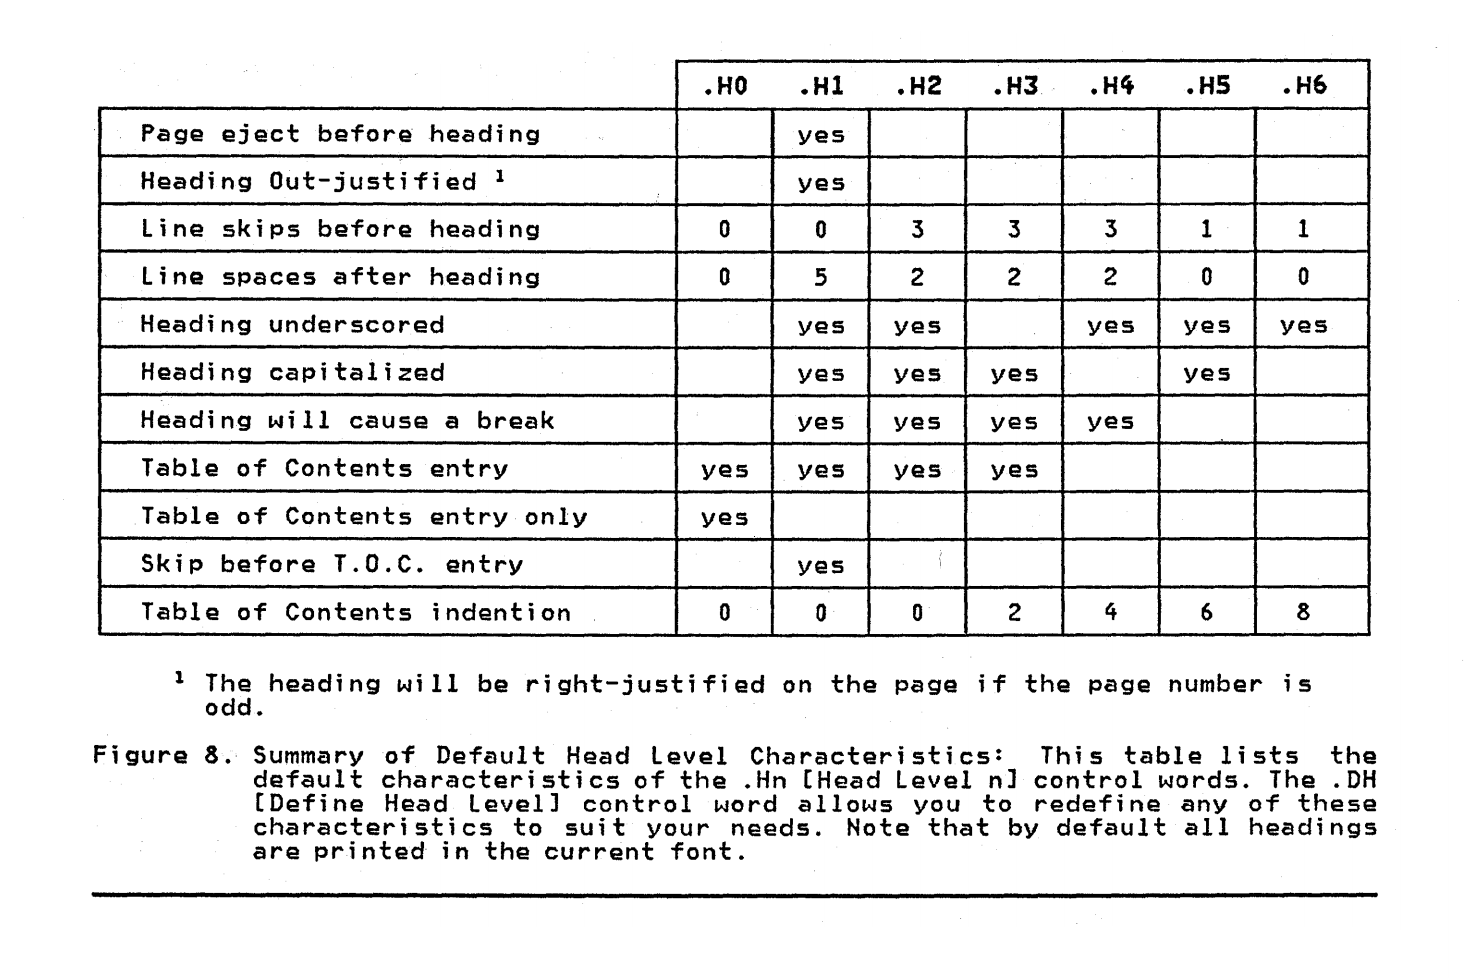 Summary table of the default head level characteristics, from H0 to H6.